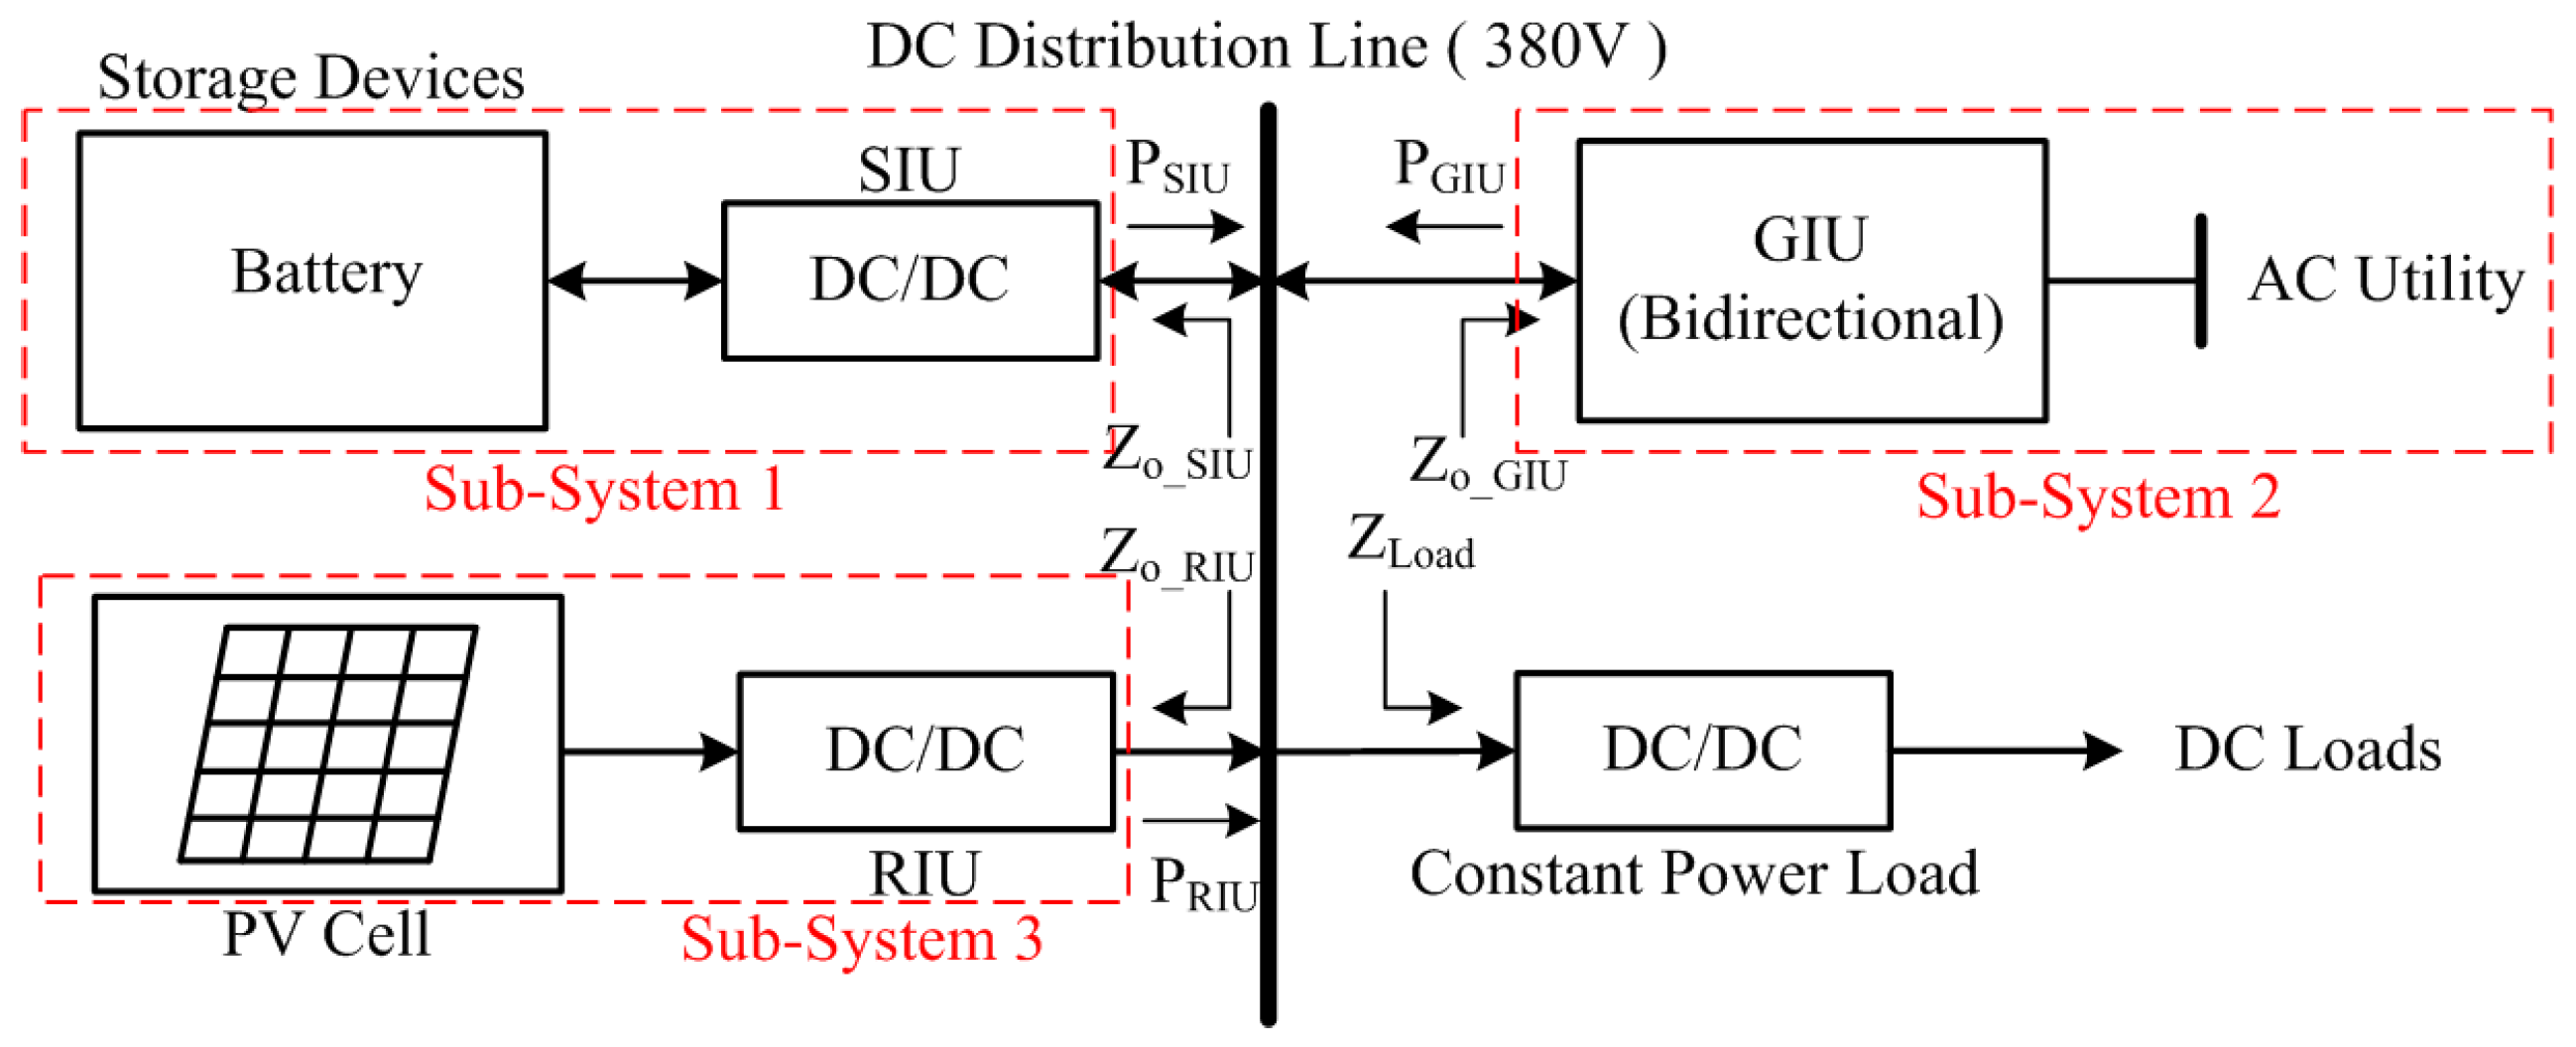 thesis on power system protection Effects of cloud-induced photovoltaic power transients on power system protection a thesis presented to the faculty of california polytechnic state university,.